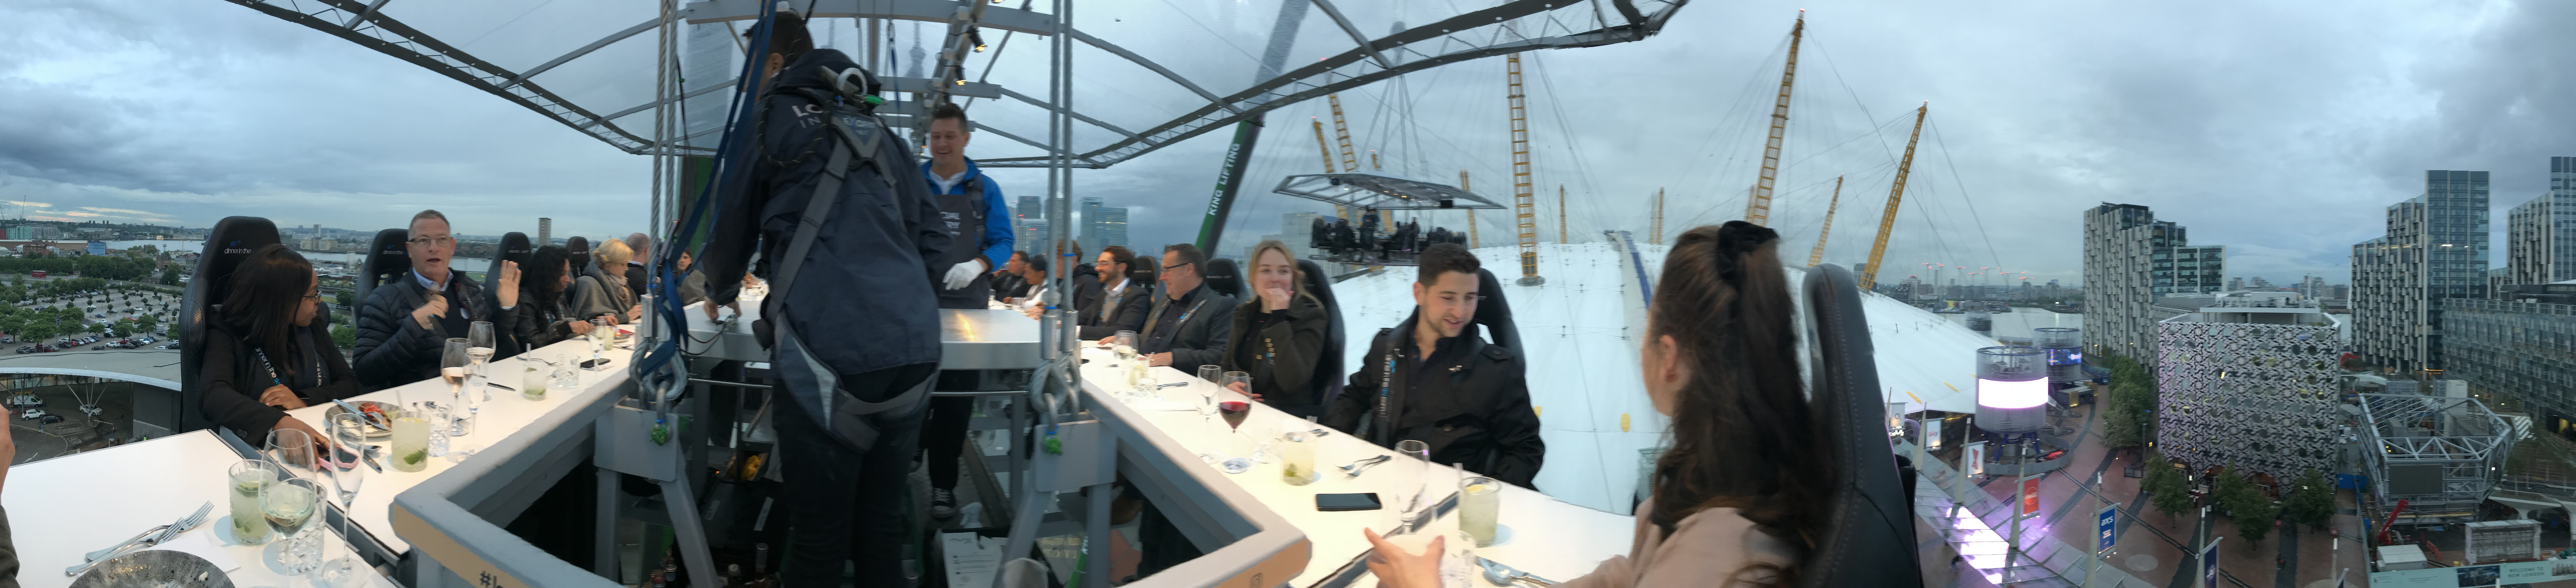 Retail Outlet Dinner In The Sky